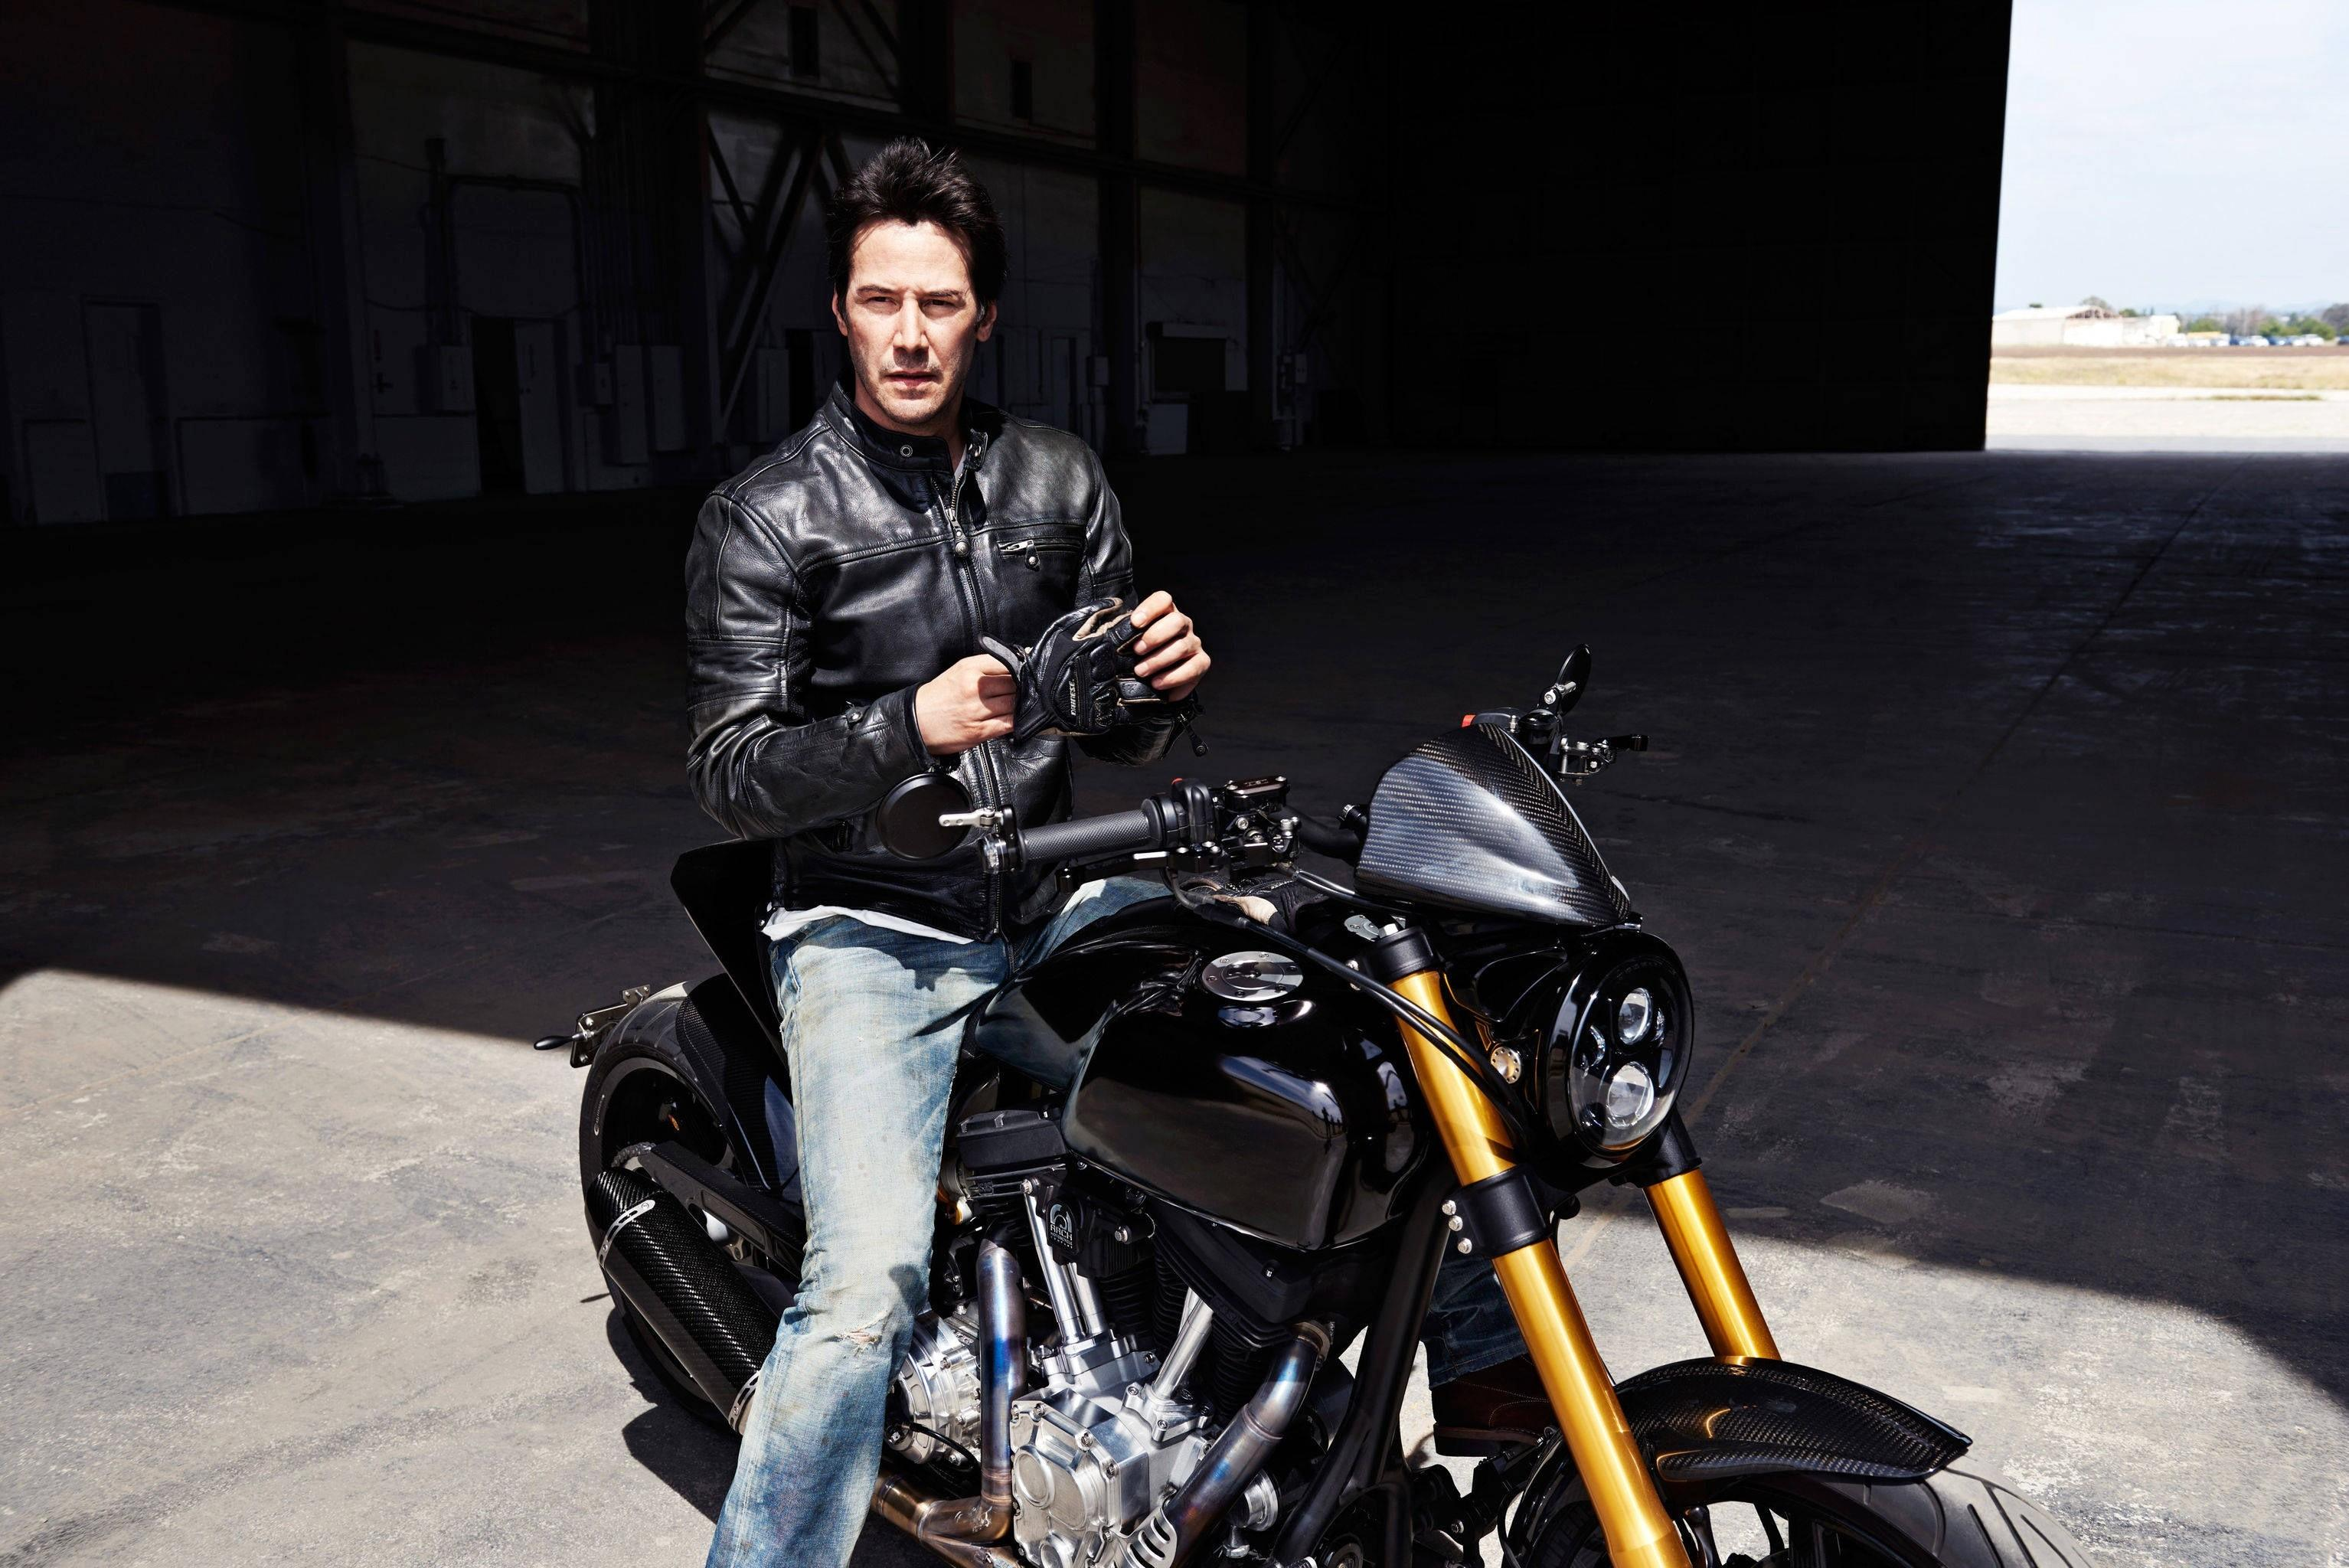 Wallpaper Accident Cars Keanu Reeves Bike Wallpapers Wallpaper Cave